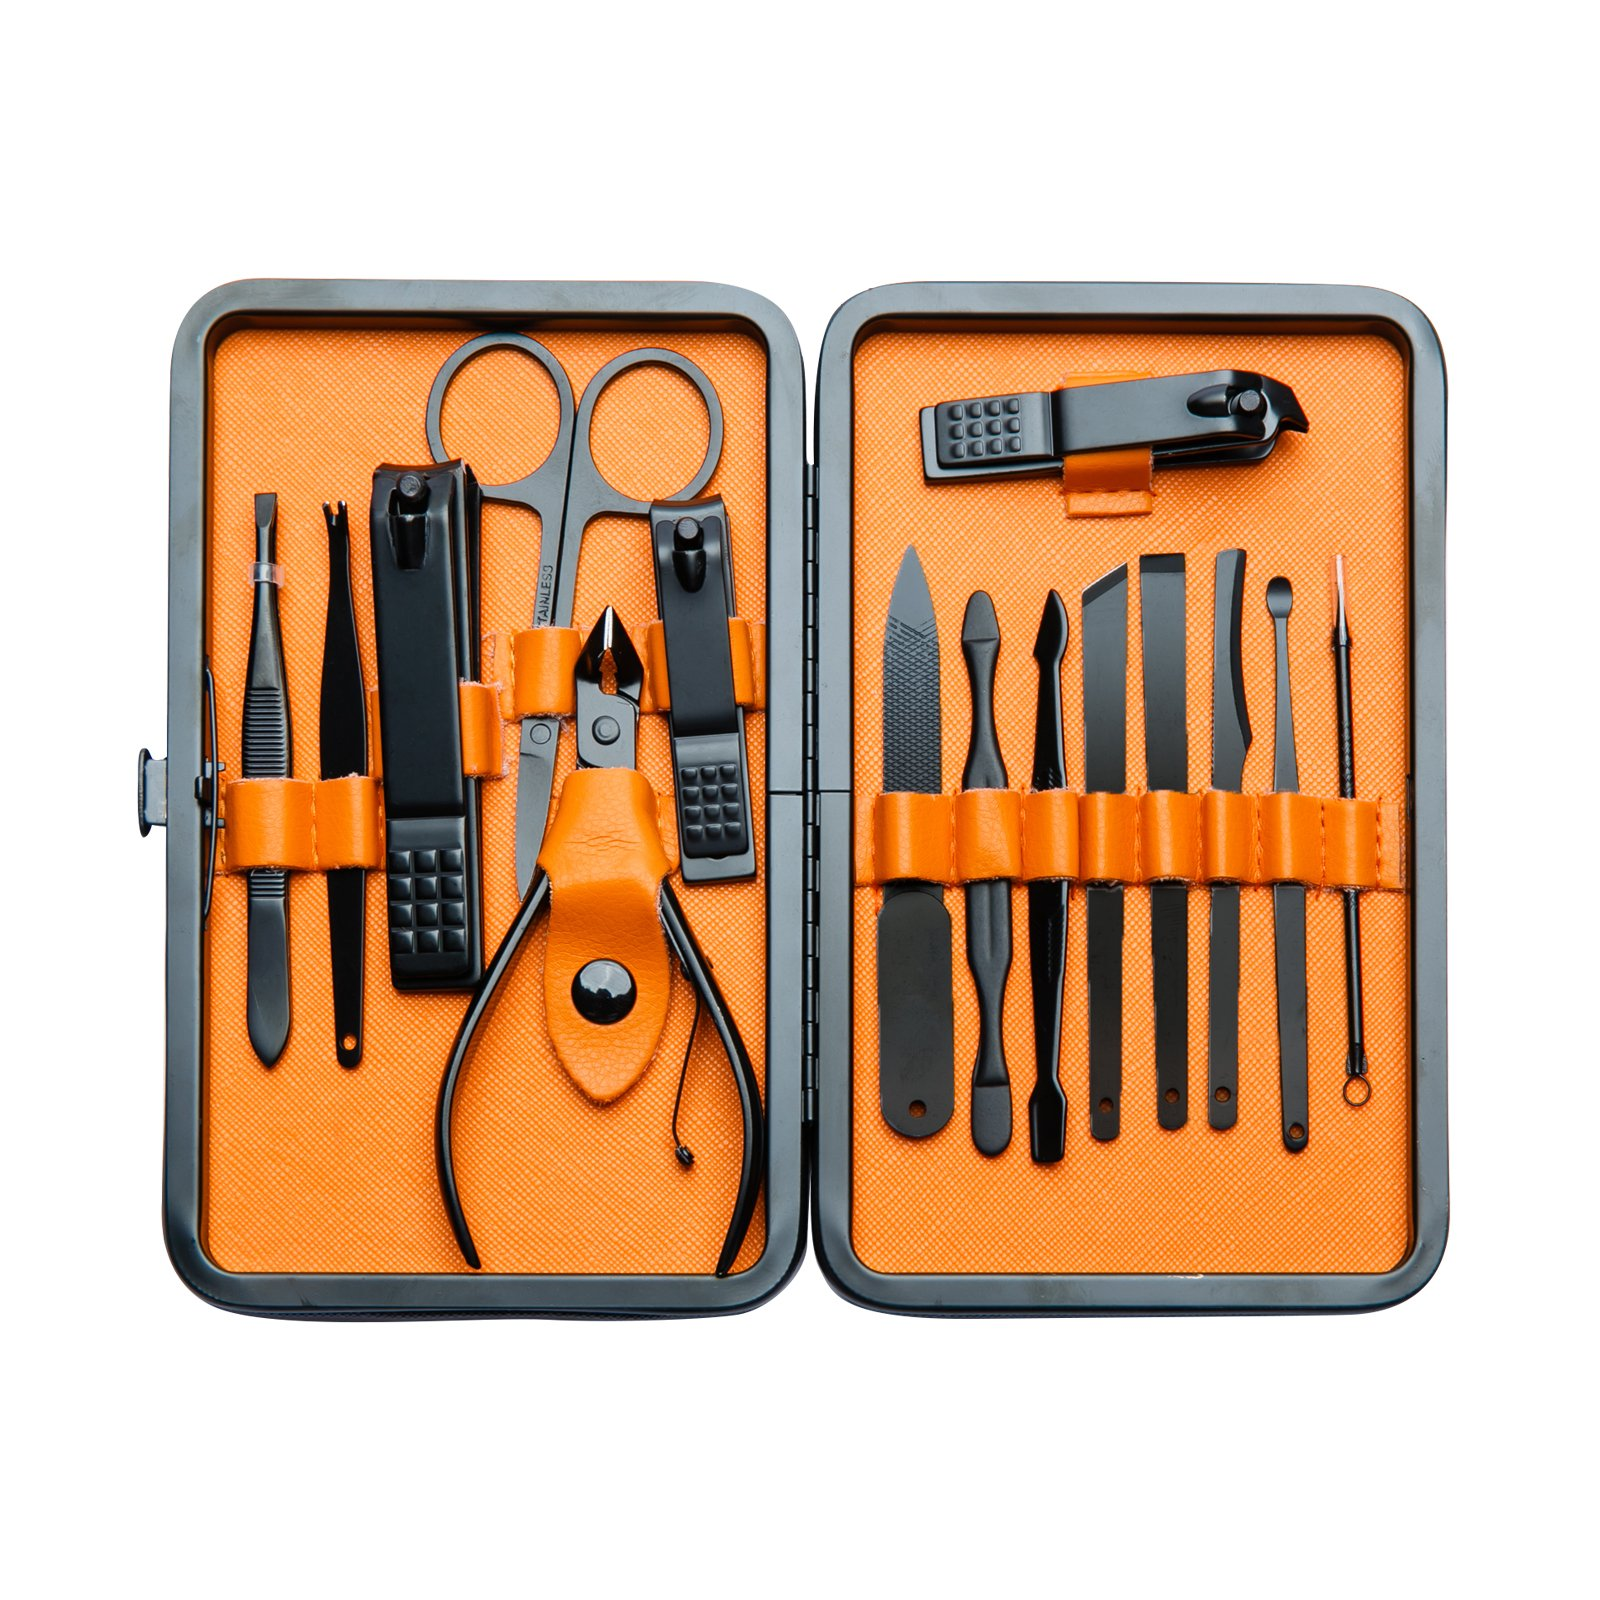 Euryno Professional Stainless Steel Black Polishing Nail Clipper Travel & Grooming Kit Nail Tools Manicure & Pedicure Set of 15 pcs with Stylish Case(Orange) by Euryno (Image #1)